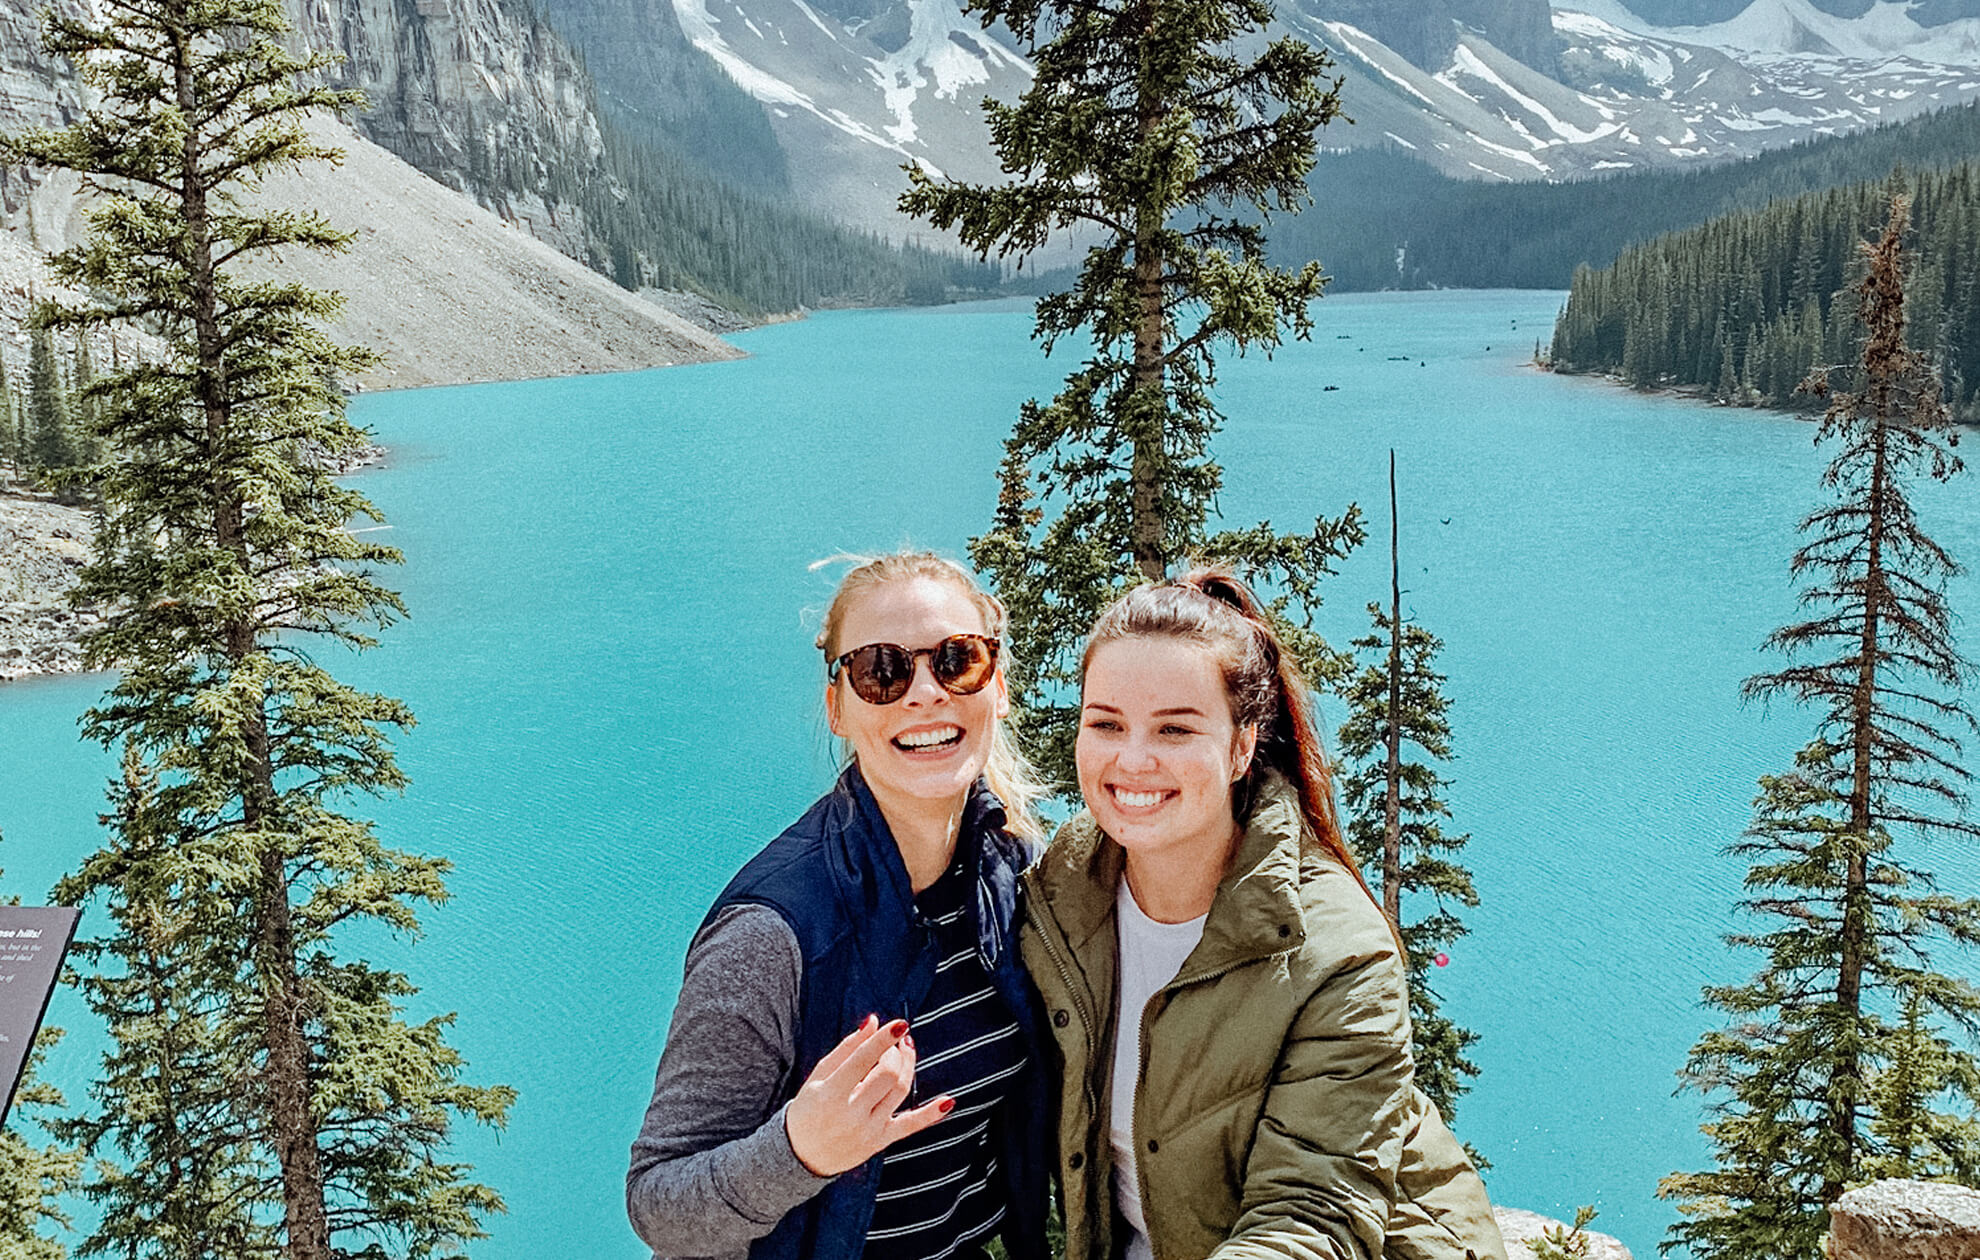 gabrielleconroy-canada-and-the-rockies-3-sized